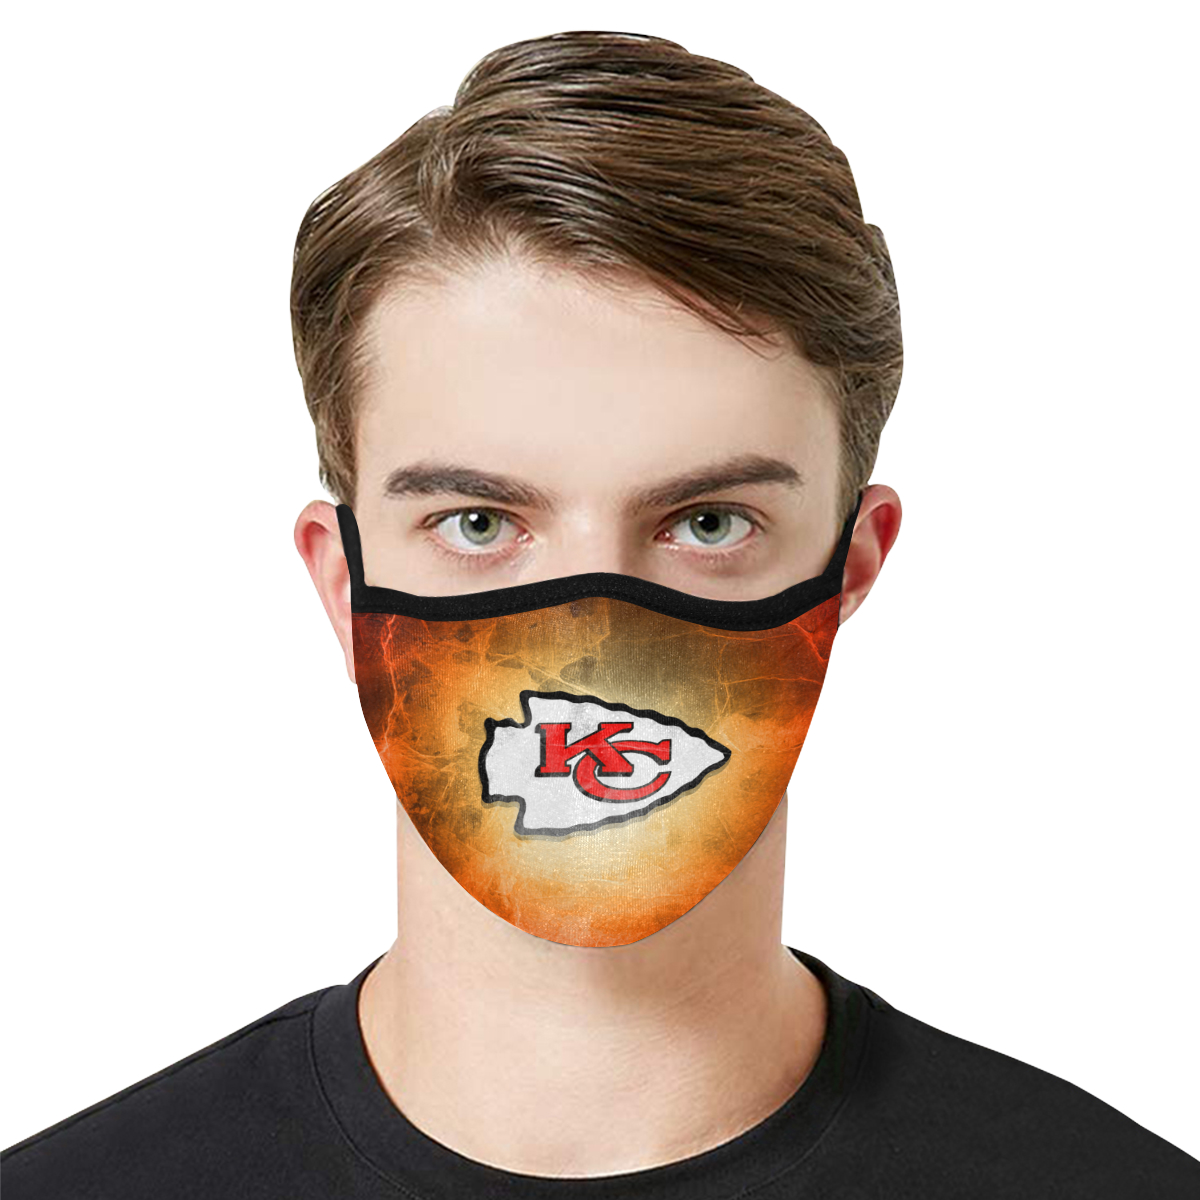 Face Mask Filter PM2.5 Kansas City Chiefs Face Mask Filter PM2.5